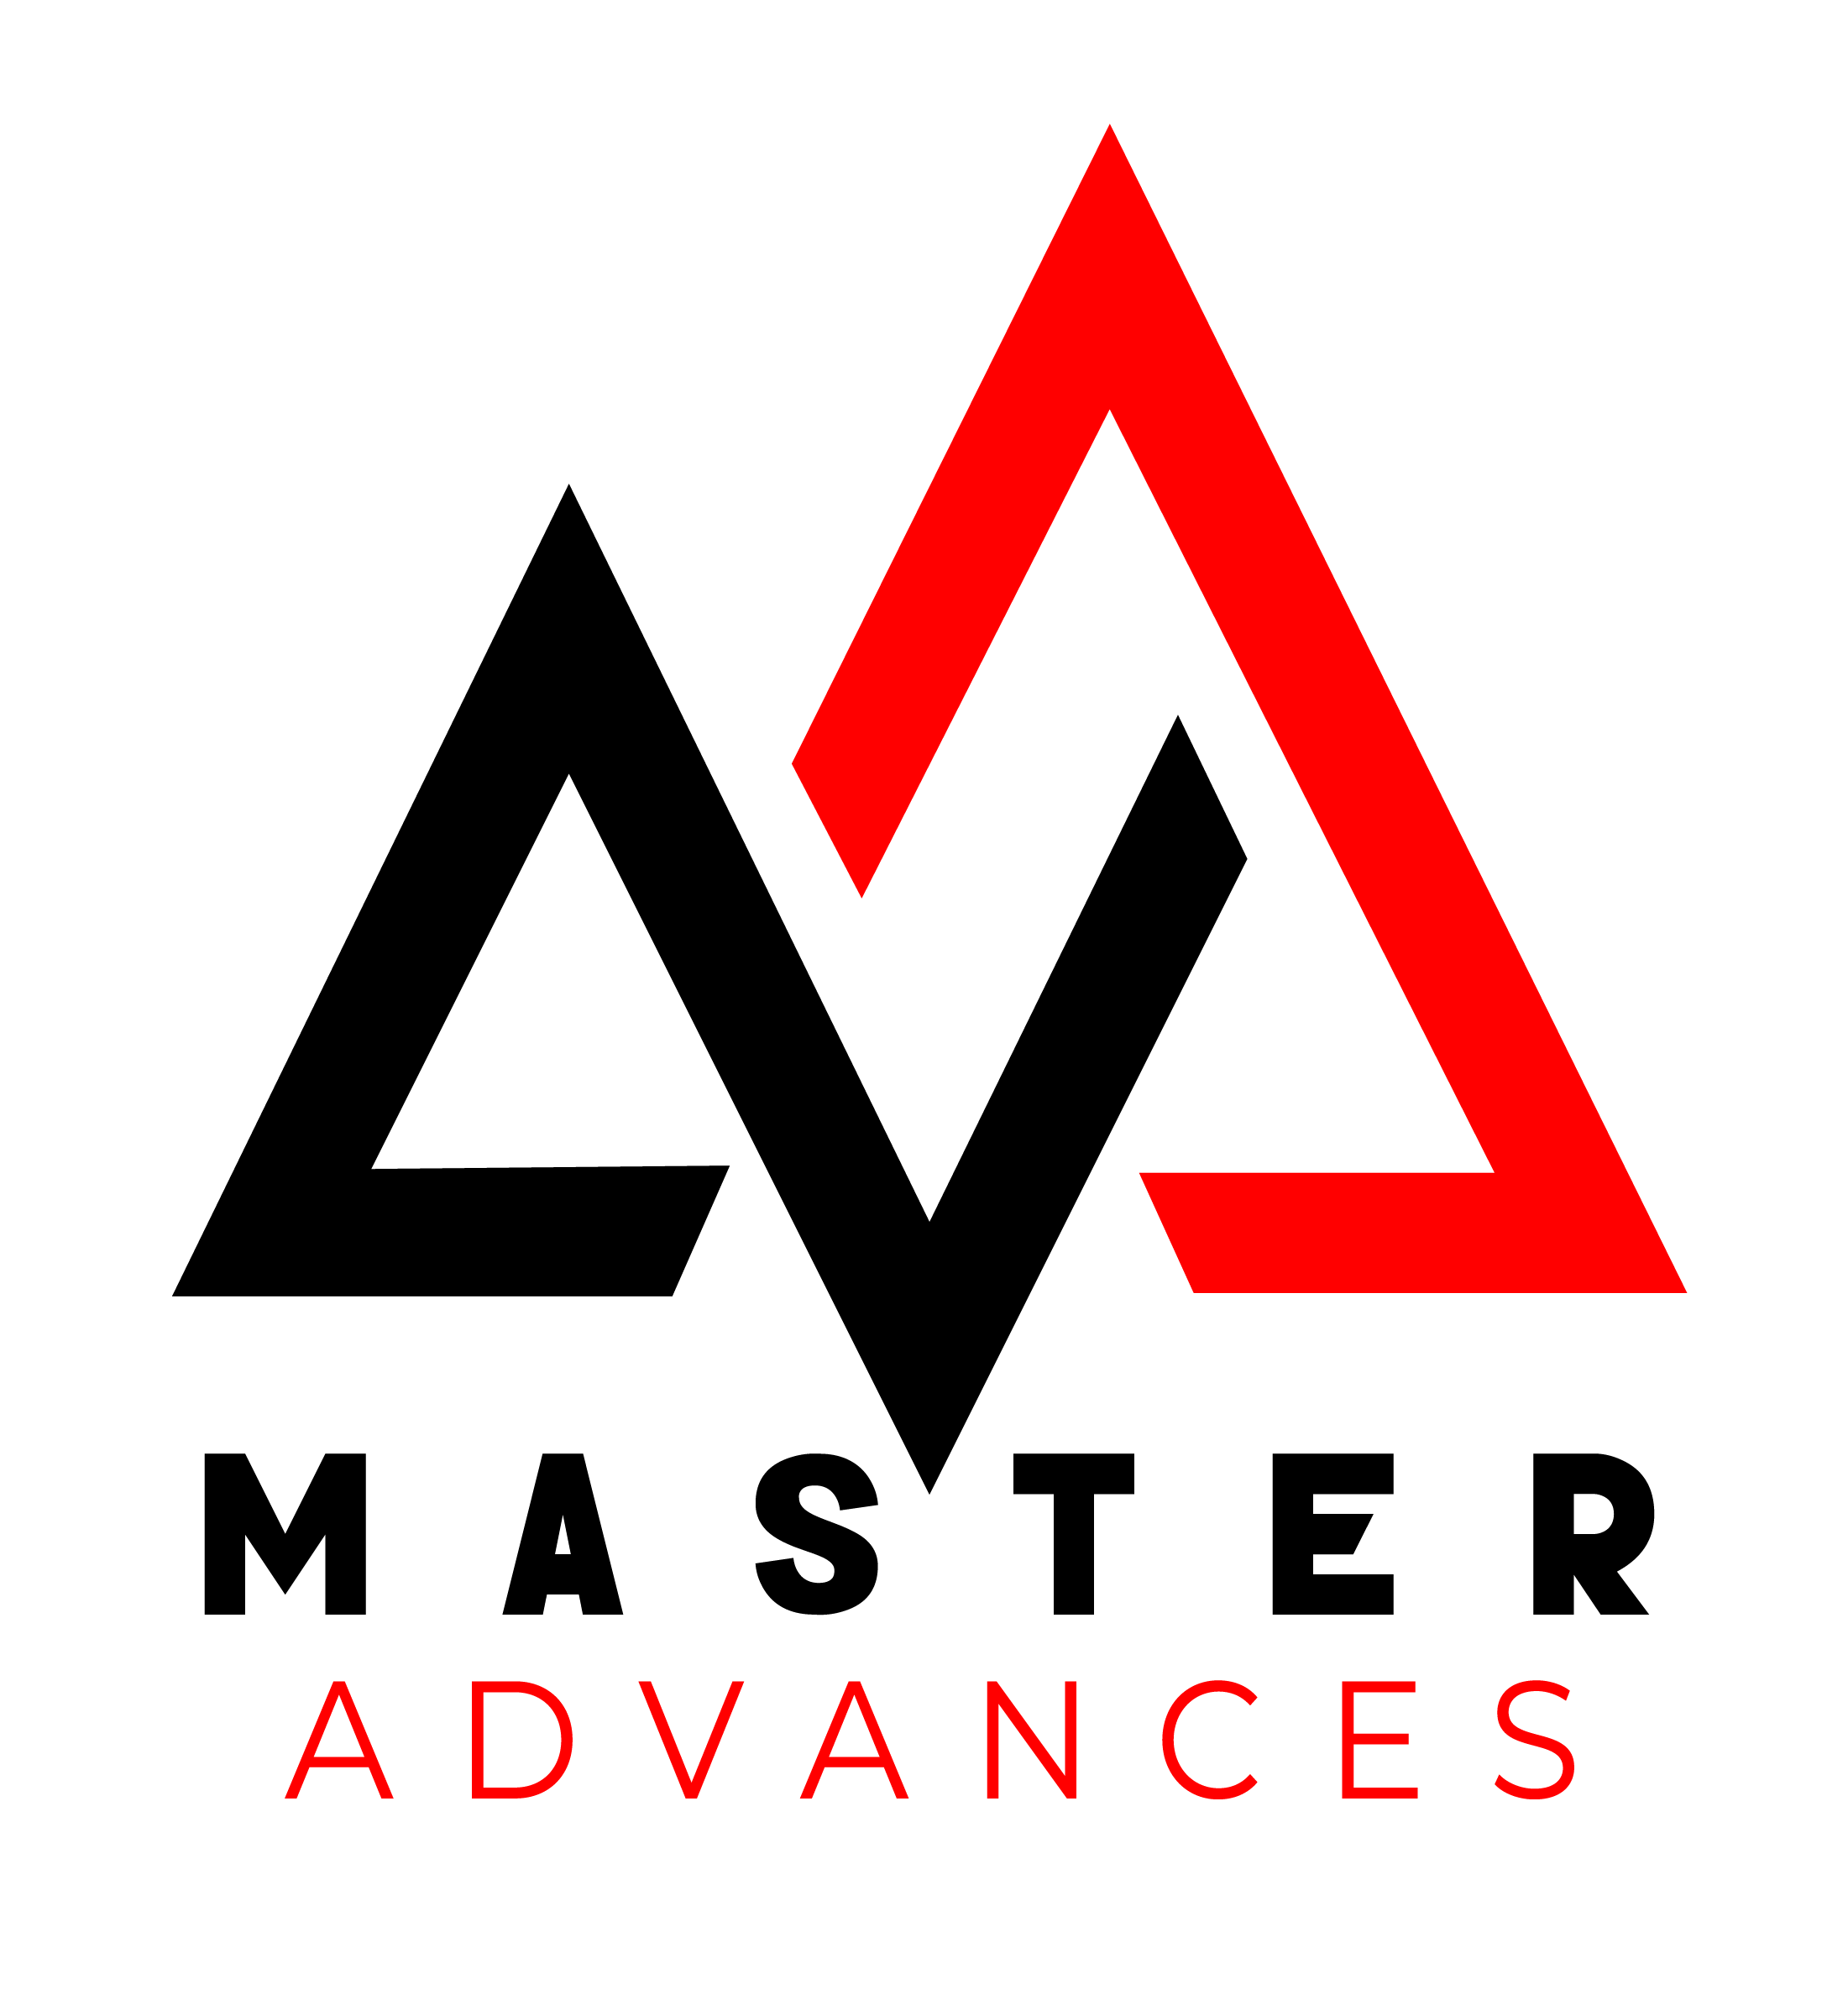 Master Advance - Cash Advance